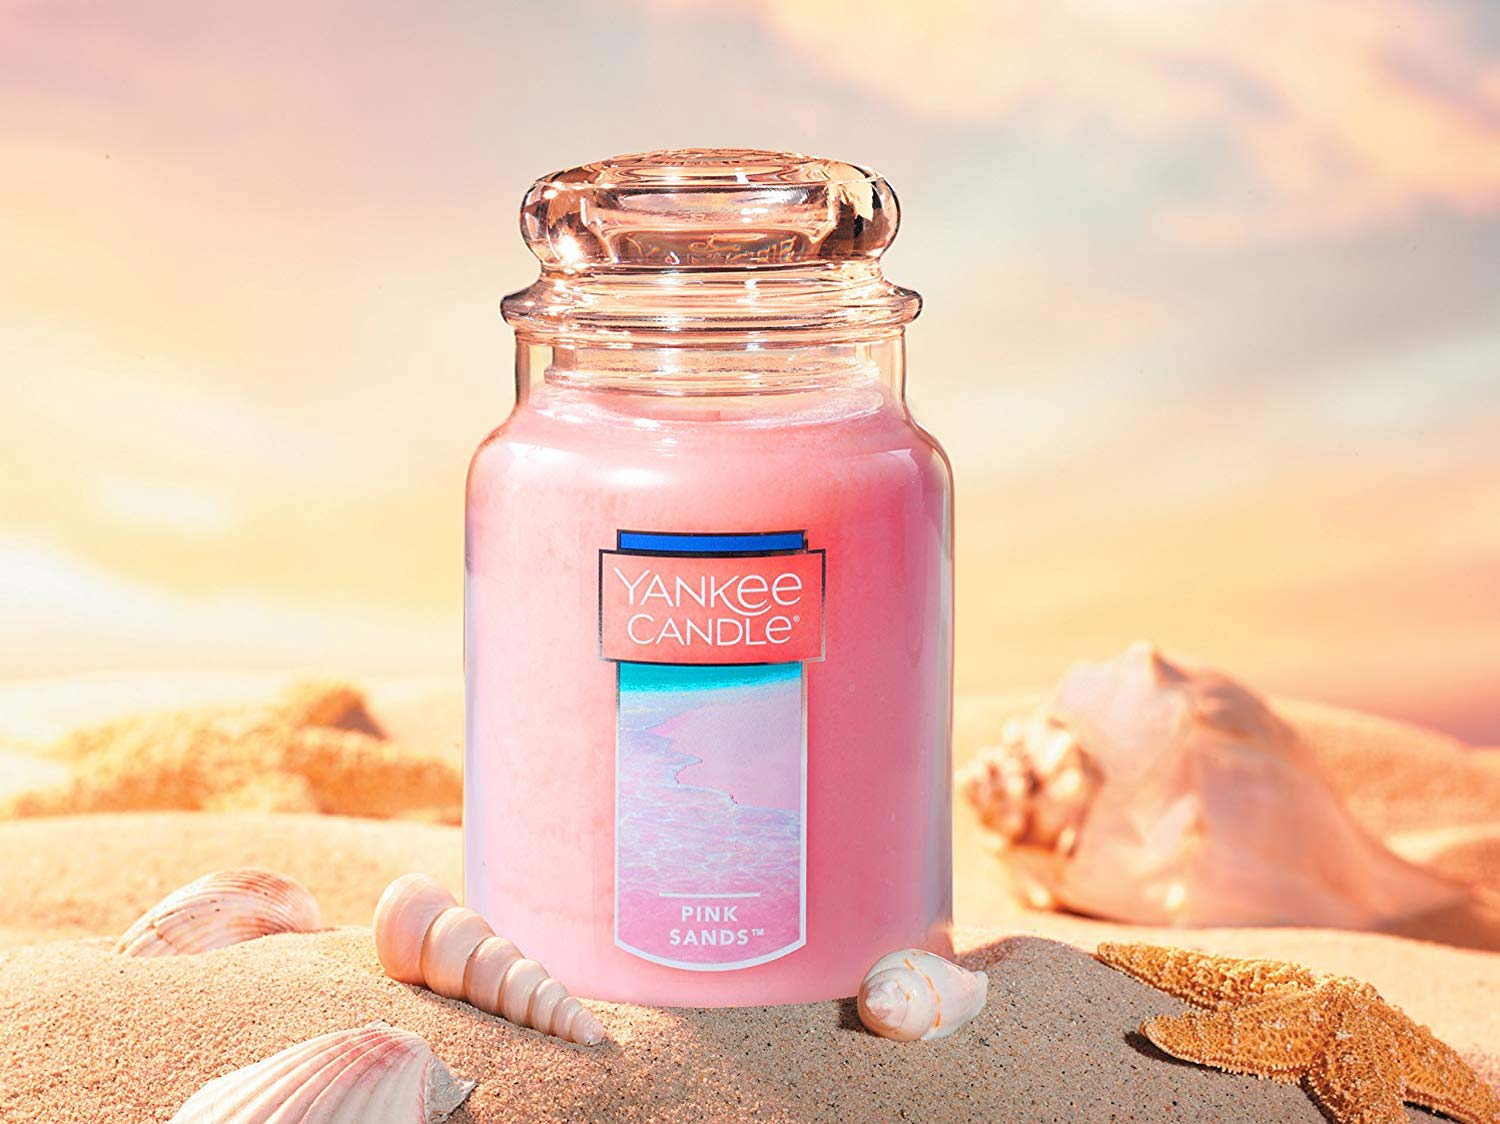 Yankee Candle Large 2-Wick Tumbler Candle, Pink Sands